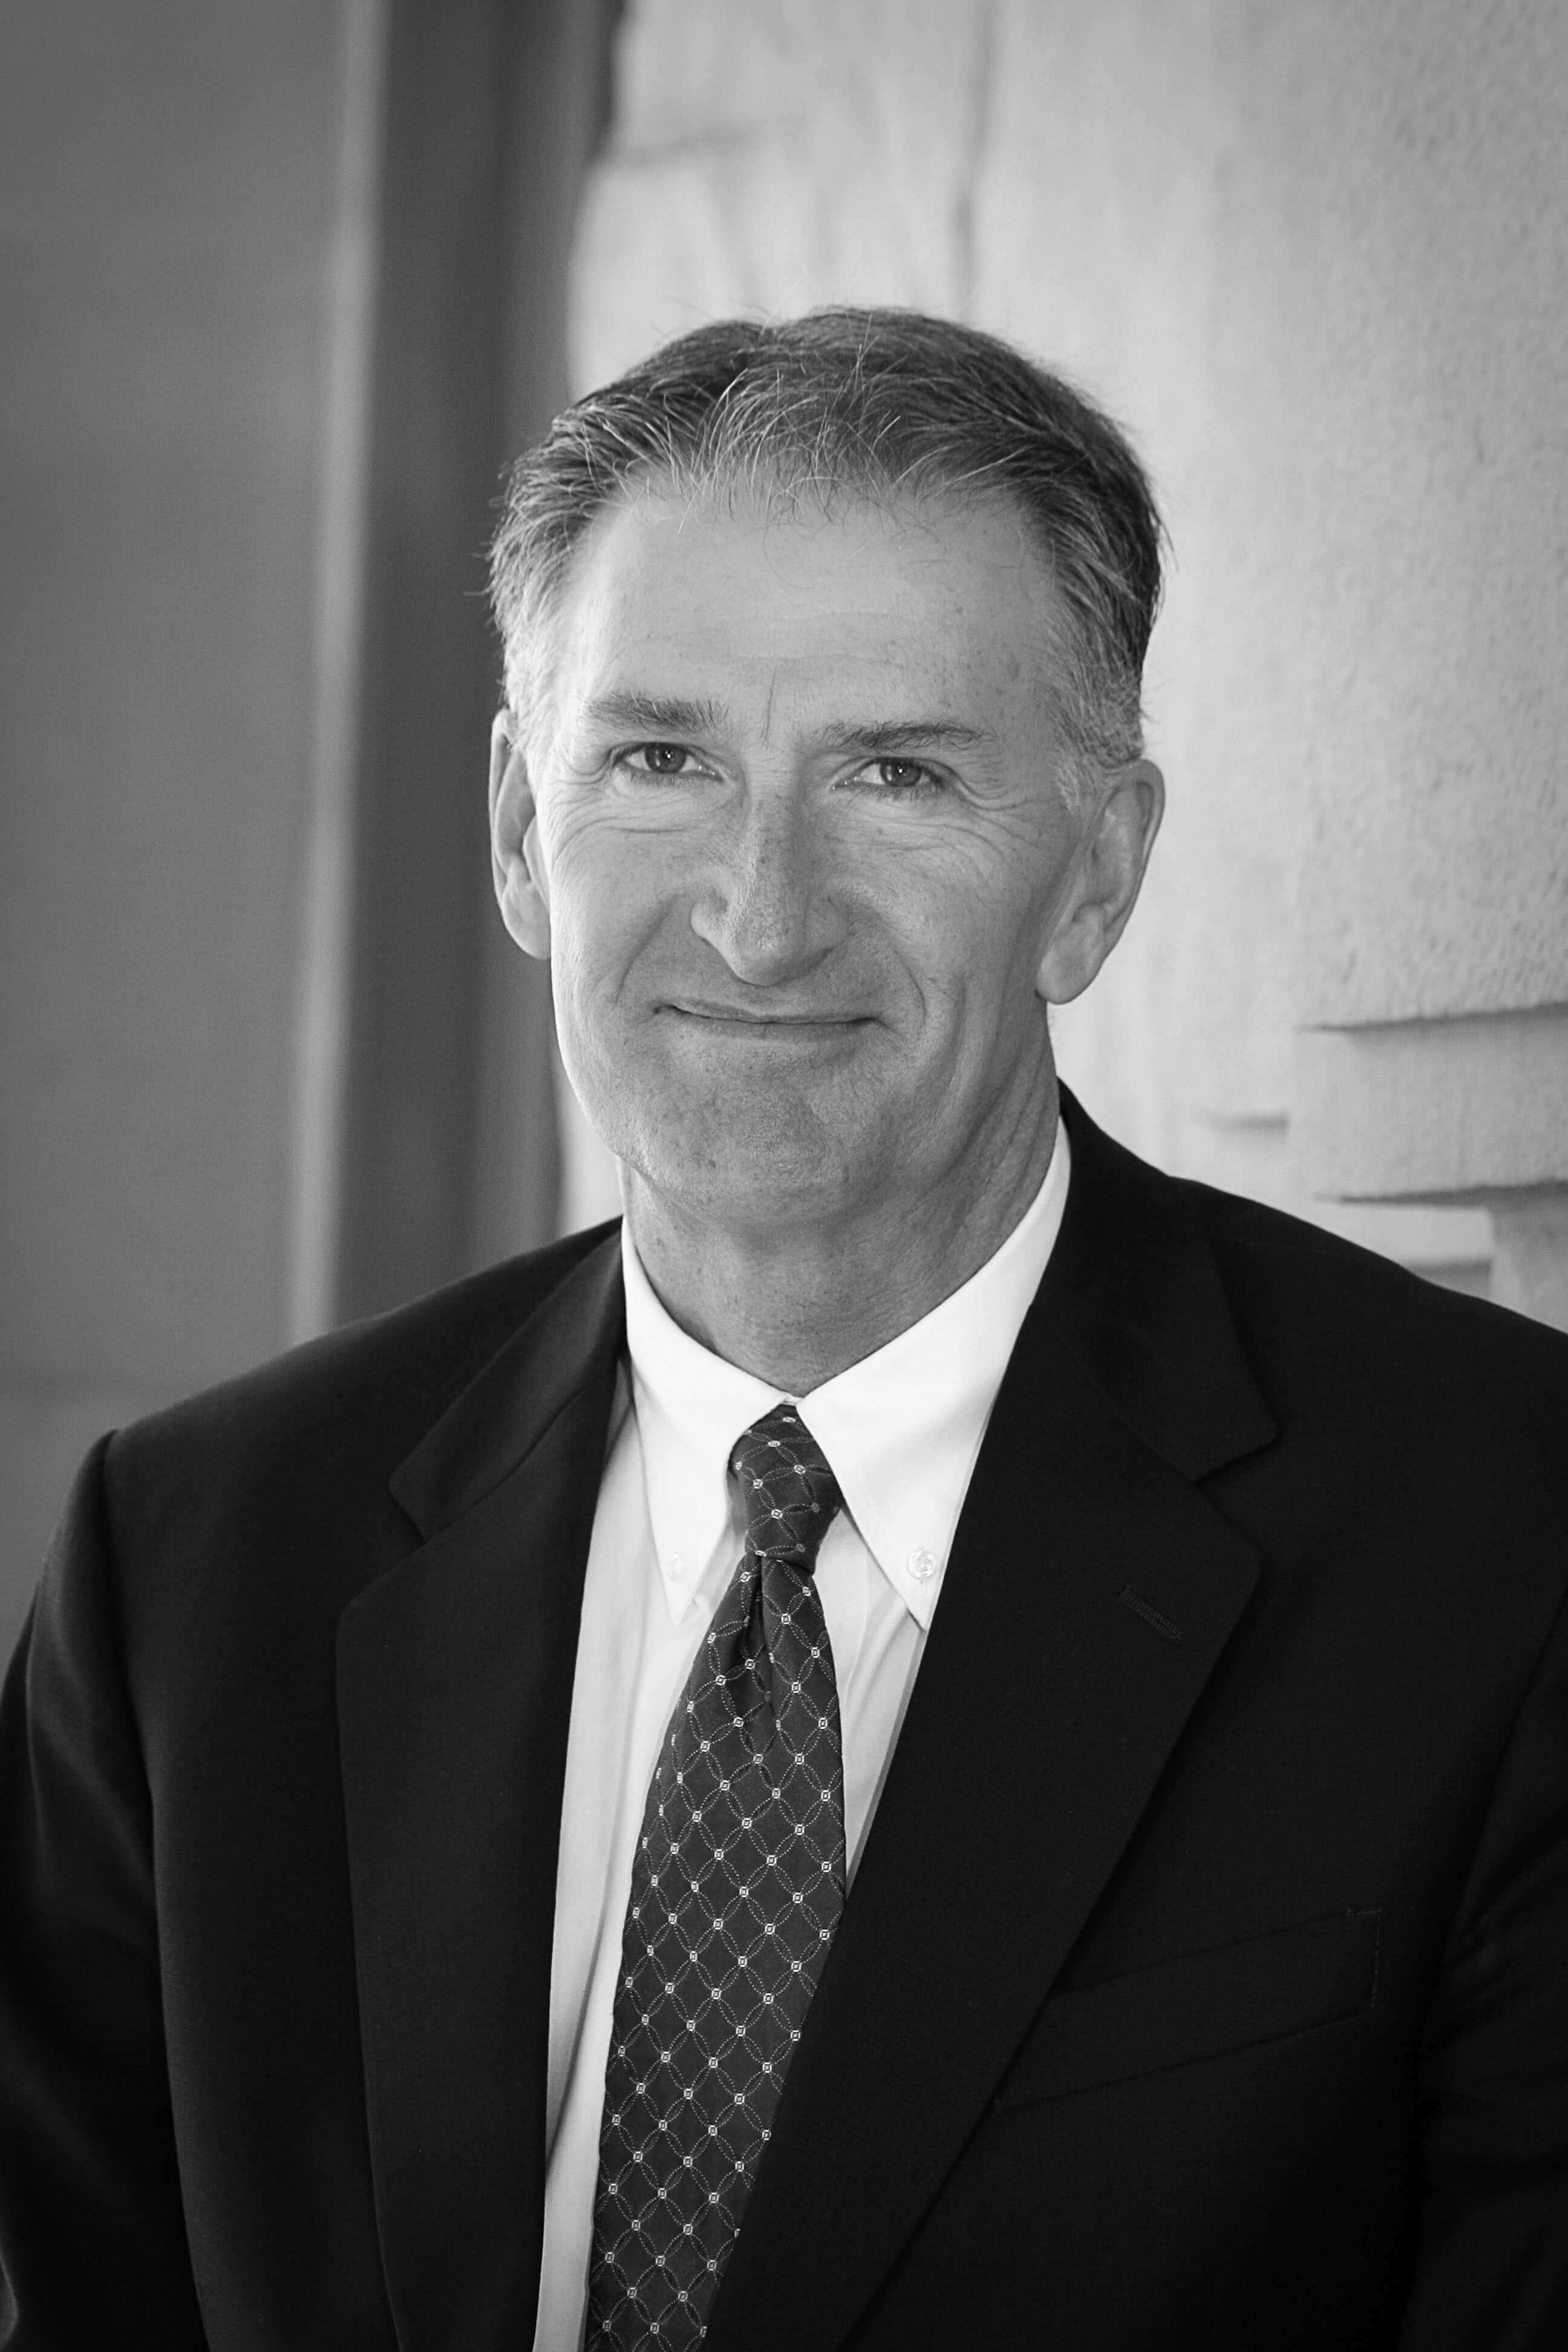 Henry F. Bailey, Jr. Partner, Founding Member